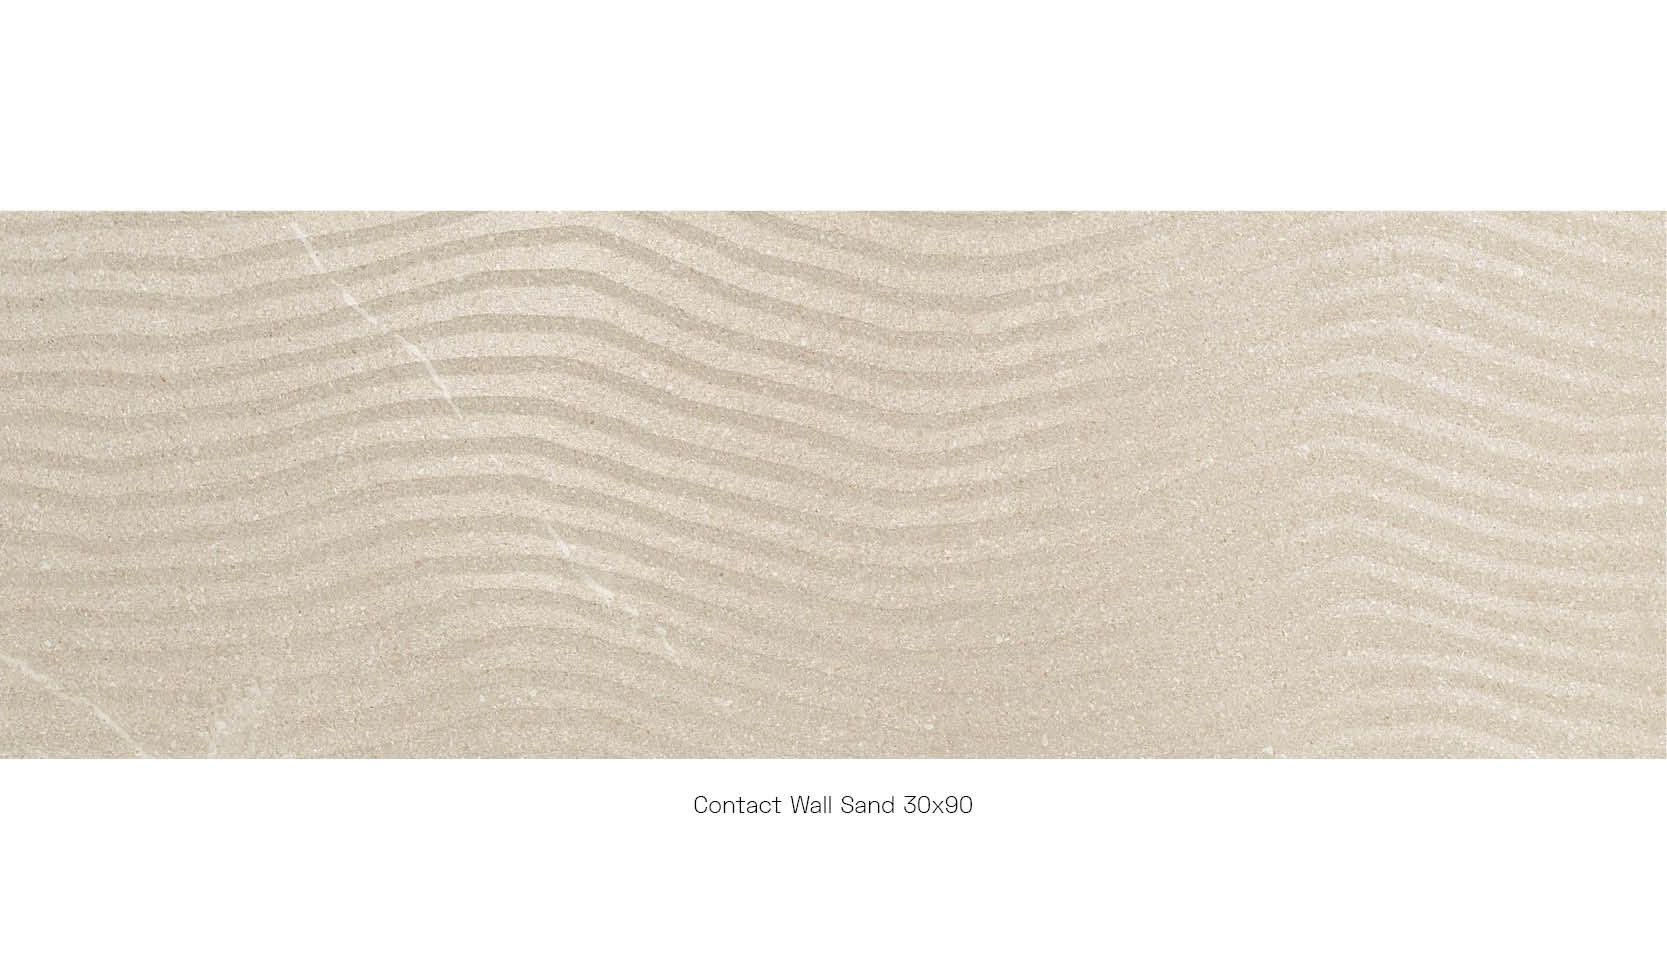 Contact wall sand 30 x 90